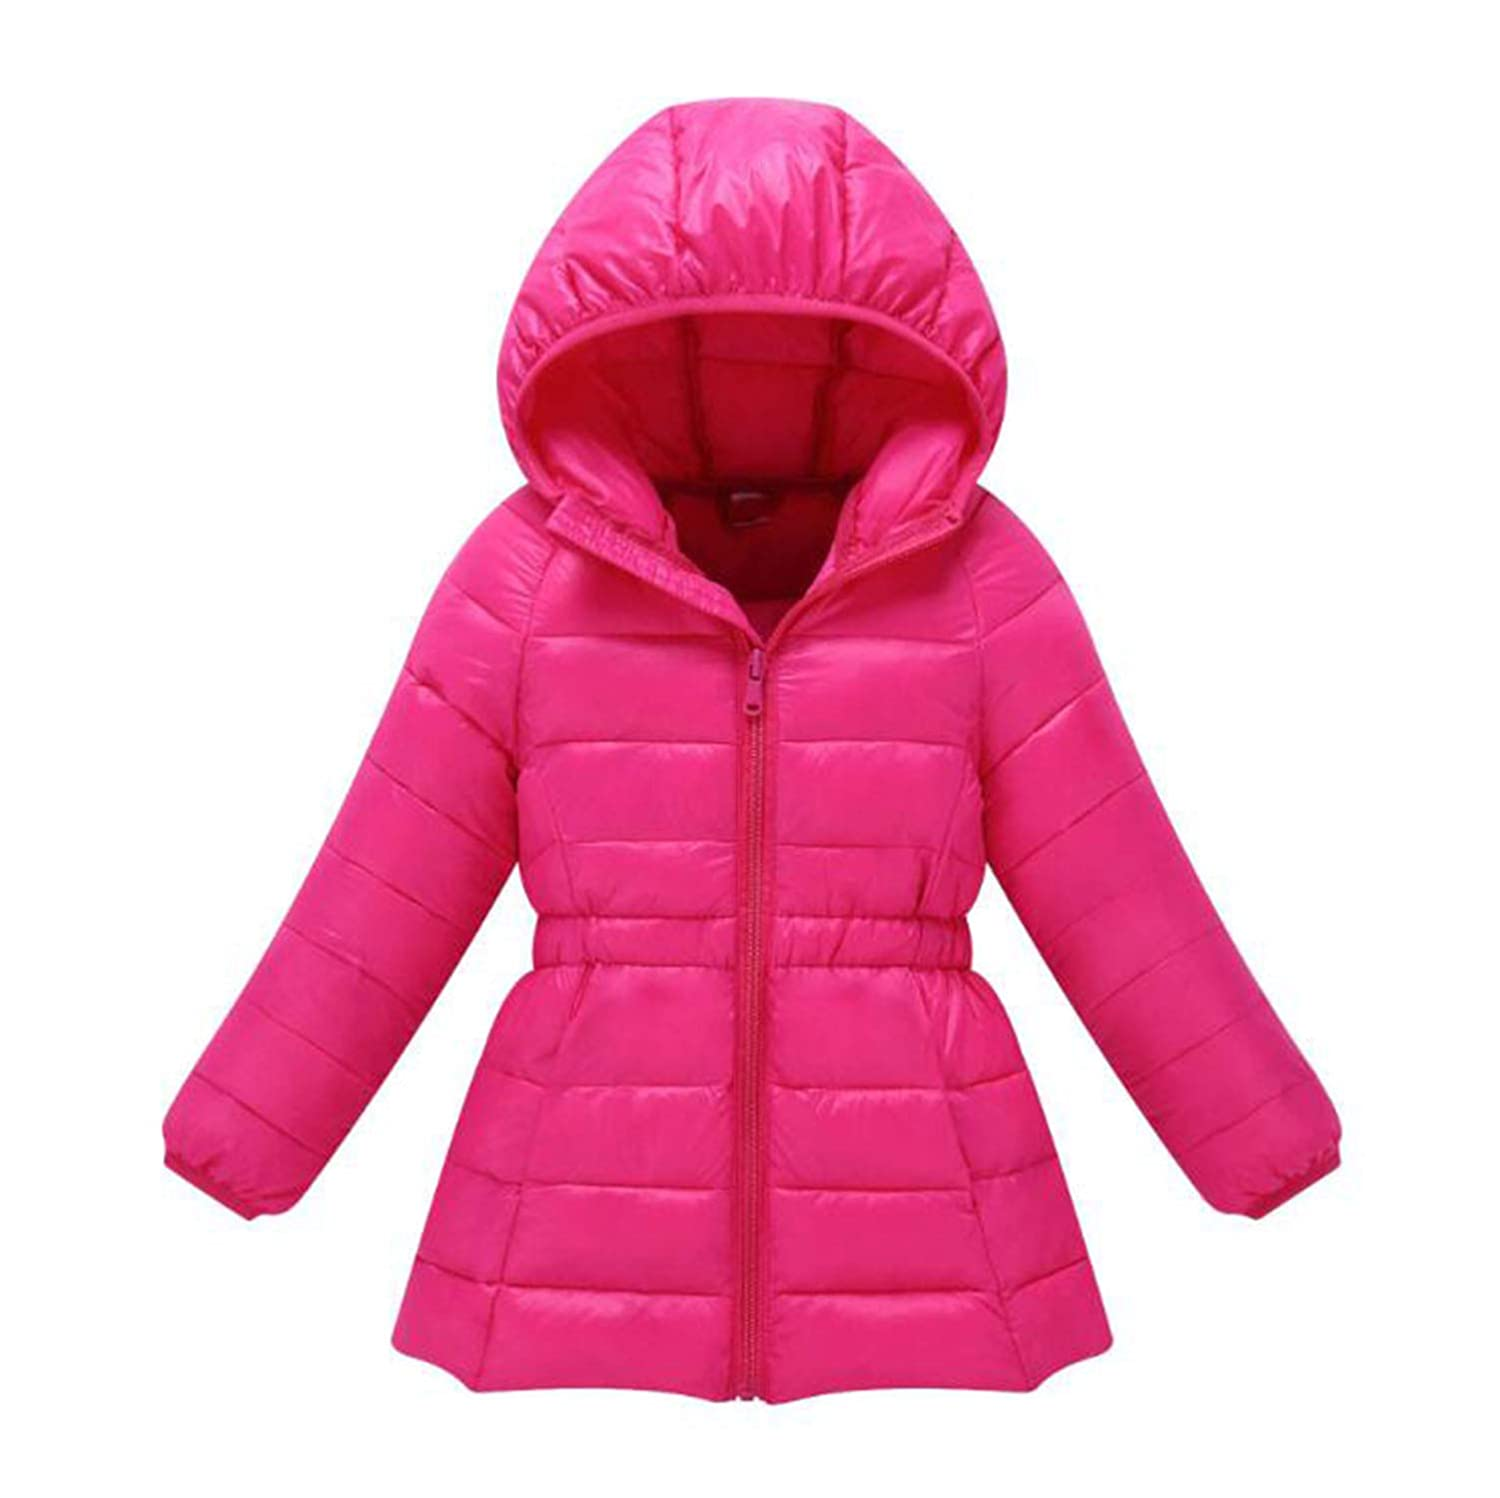 FIZUOXVE Little Girls Winter Quilted Parka Coat Long Sleeve Hooded Padded Puffer Long Jacket Outwear